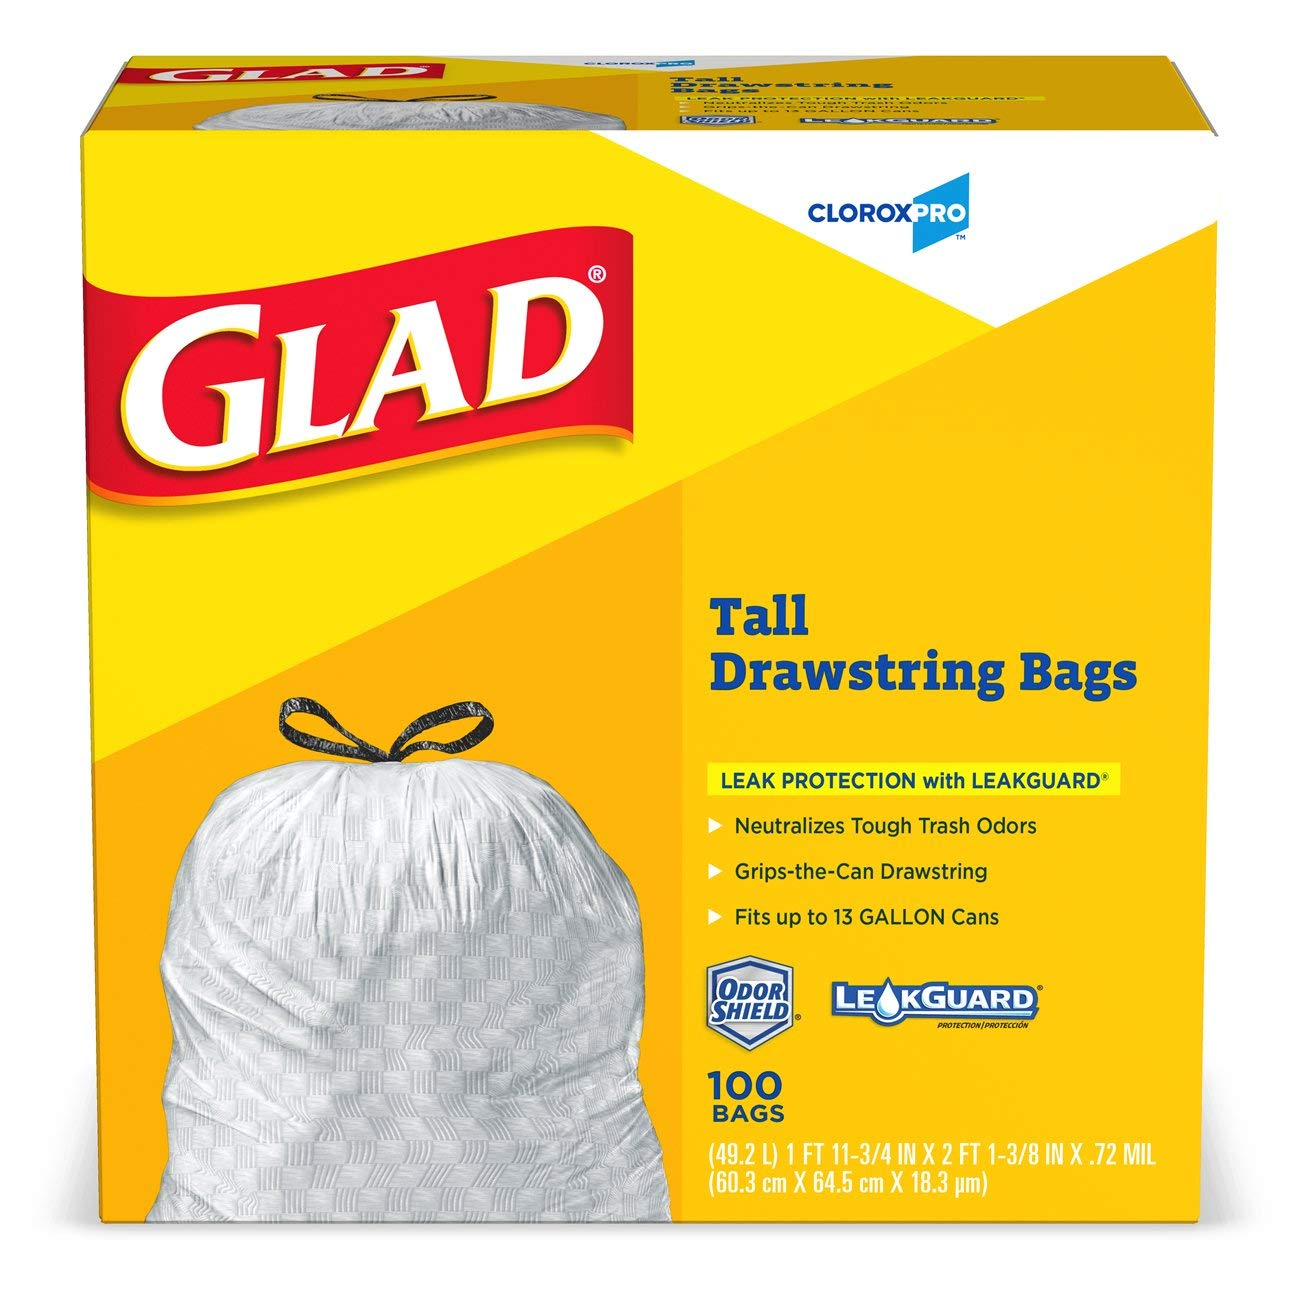 Glad Tall Kitchen Drawstring CloroxPro Trash Bags - 13 Gallon - 100 Count, 4 Boxes/Case (Packaging May Vary)